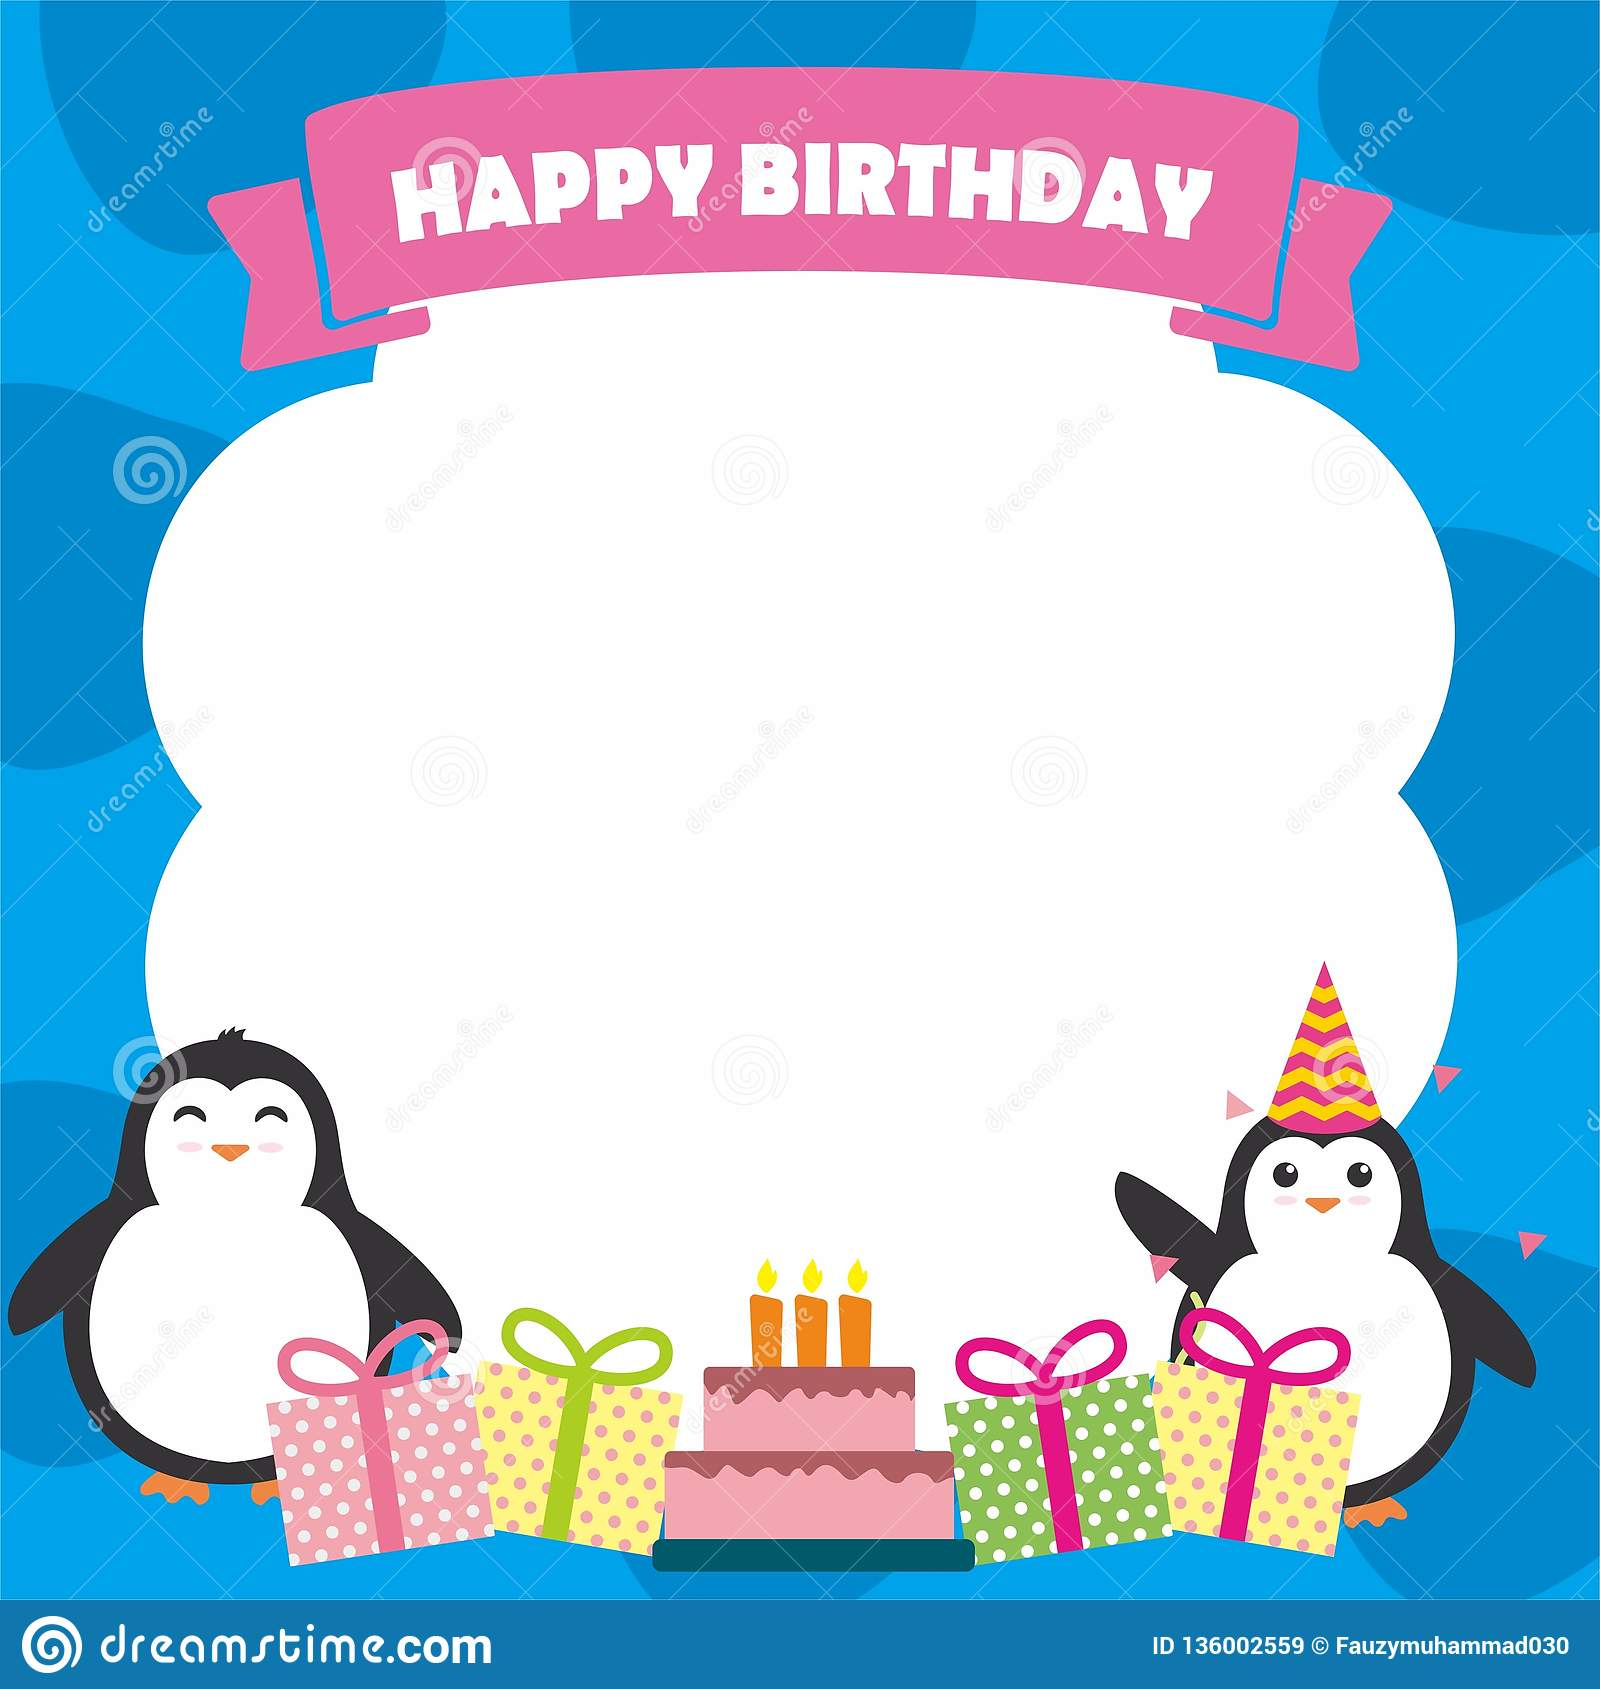 Birthday Card Designs 35 Funny Cute Examples: Birthday Card Design Template With Cute Penguin Character